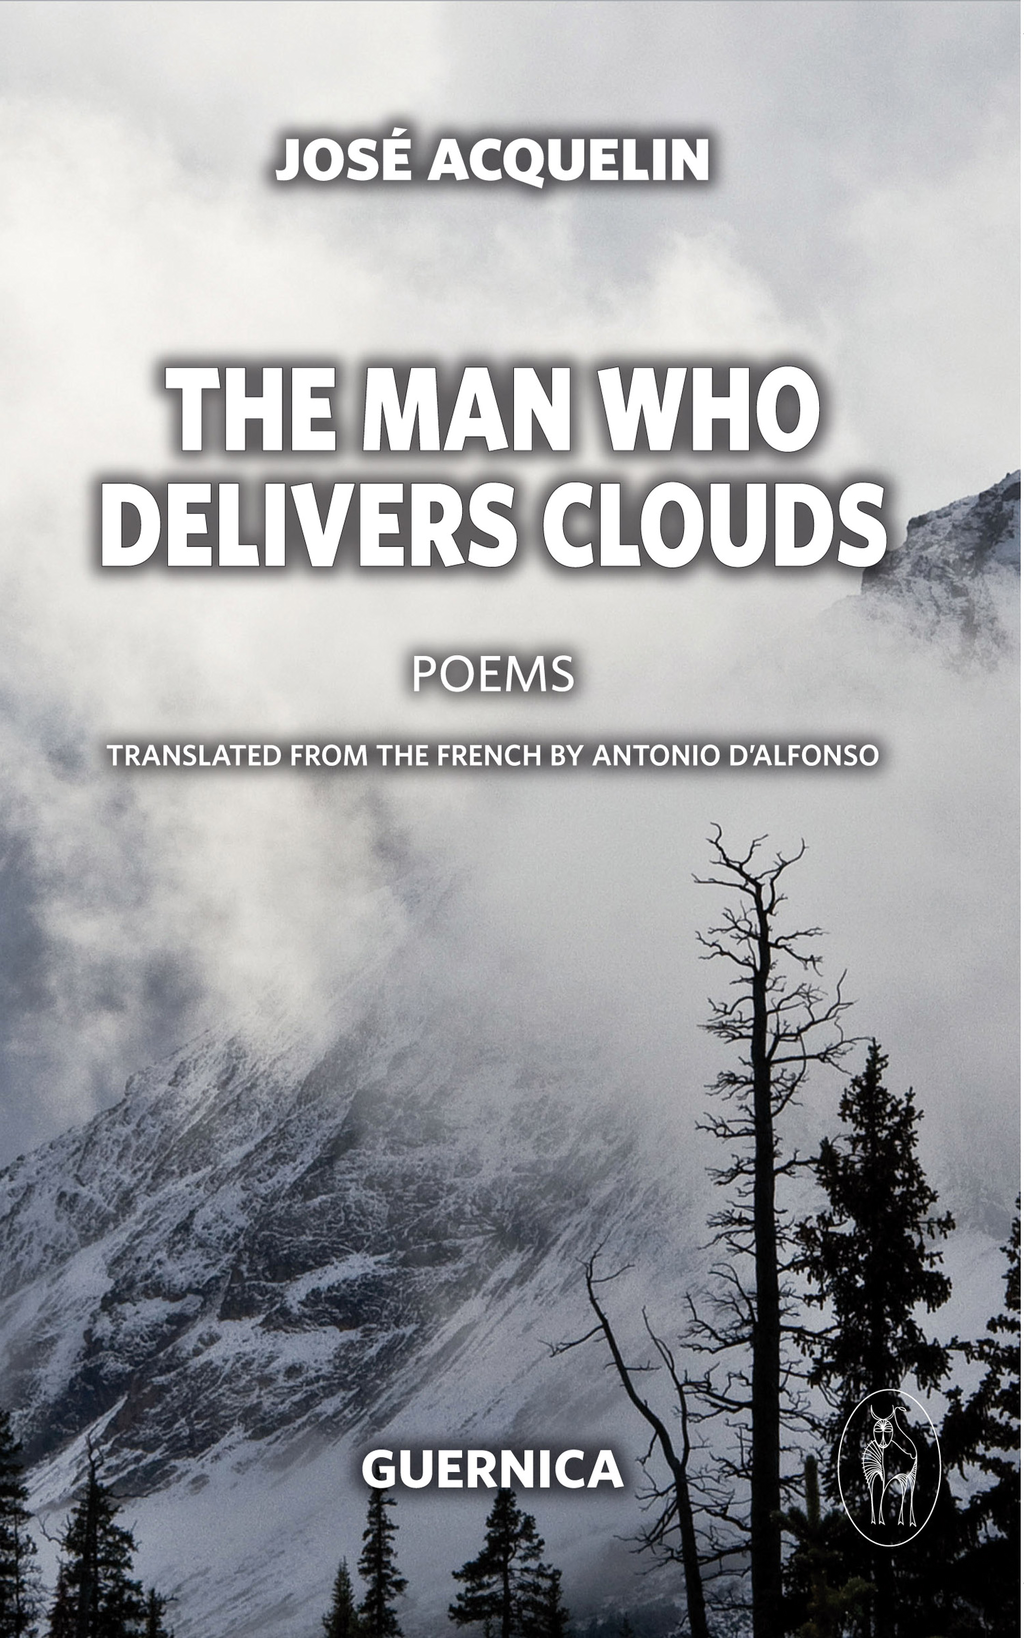 The Man Who Delivers Clouds